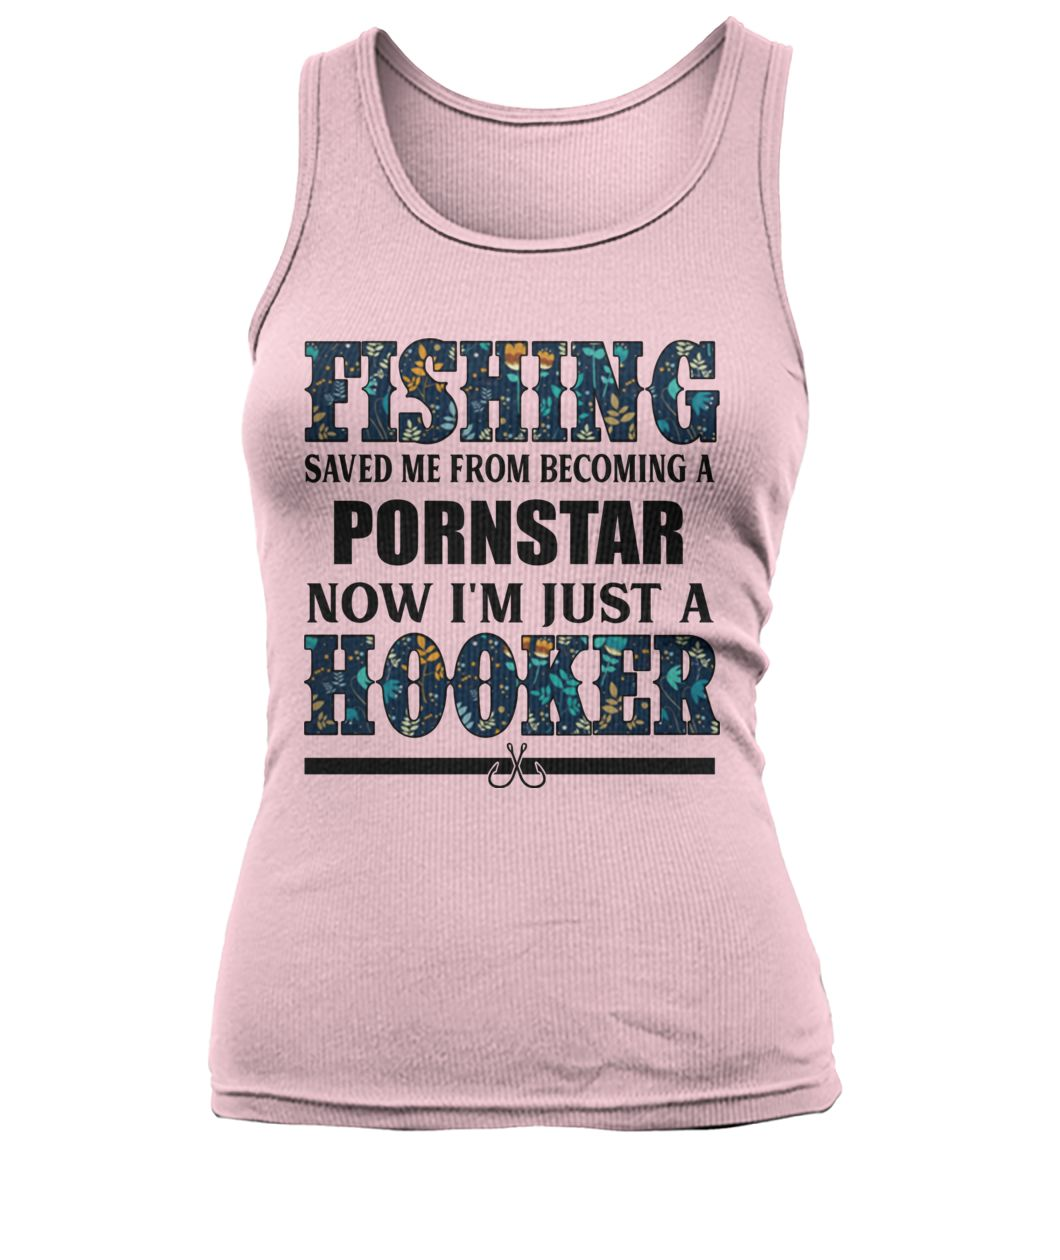 Fishing saved me from being pornstar now I'm just a hooker floral women's tank top